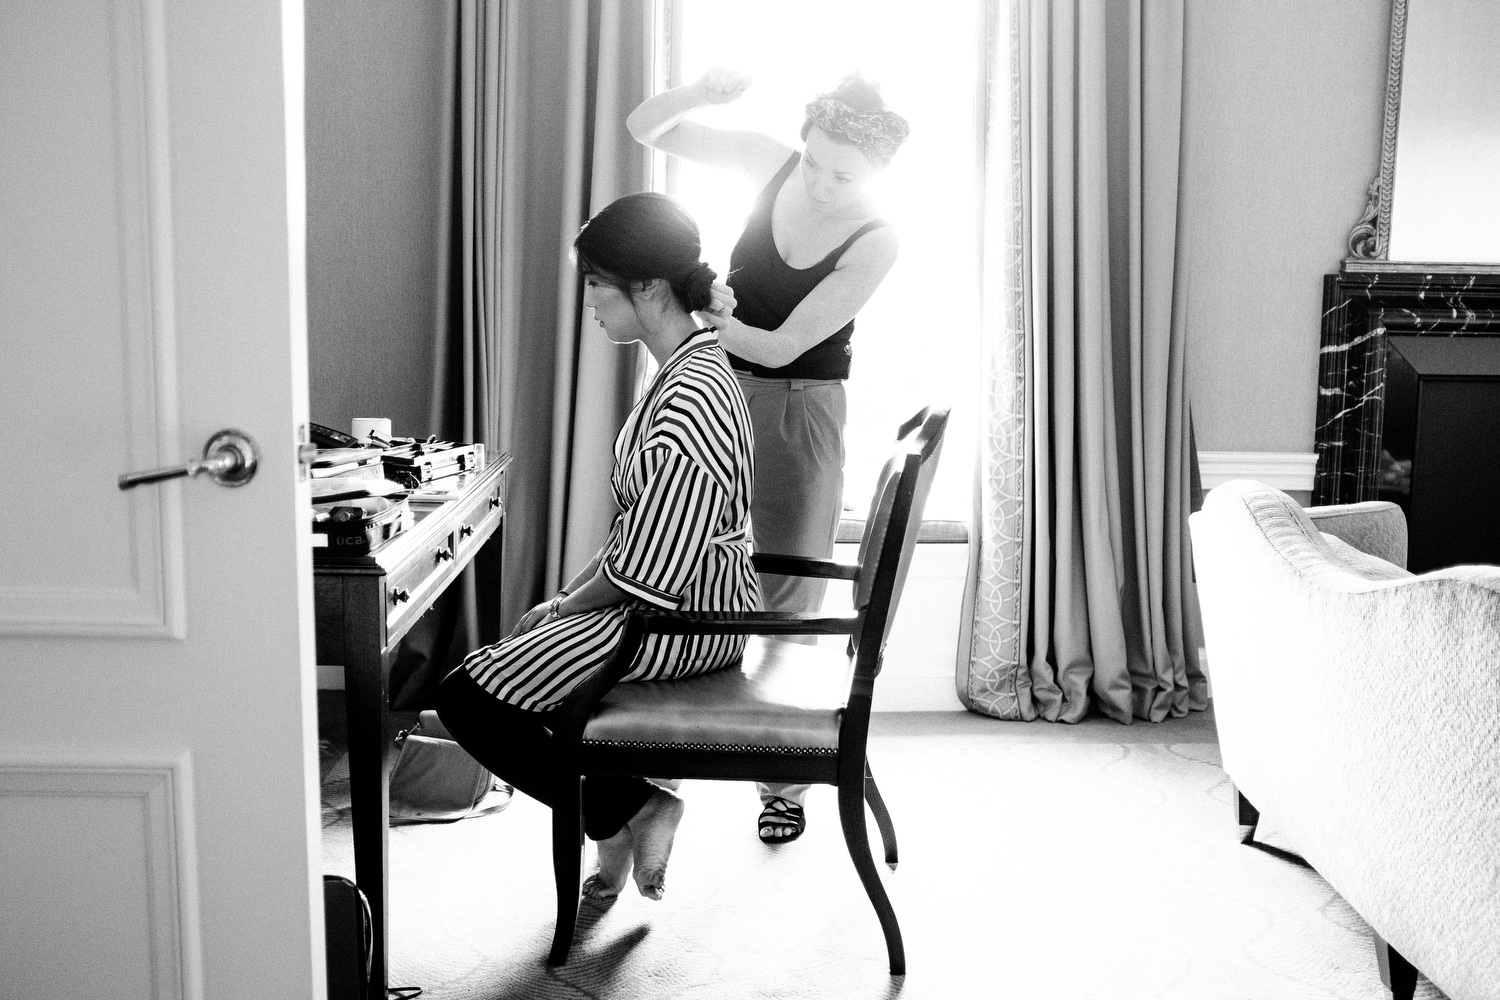 dmp0130_preparation_photographer_dublin_david_mcclelland_photography_shelbourne_documentary_wedding